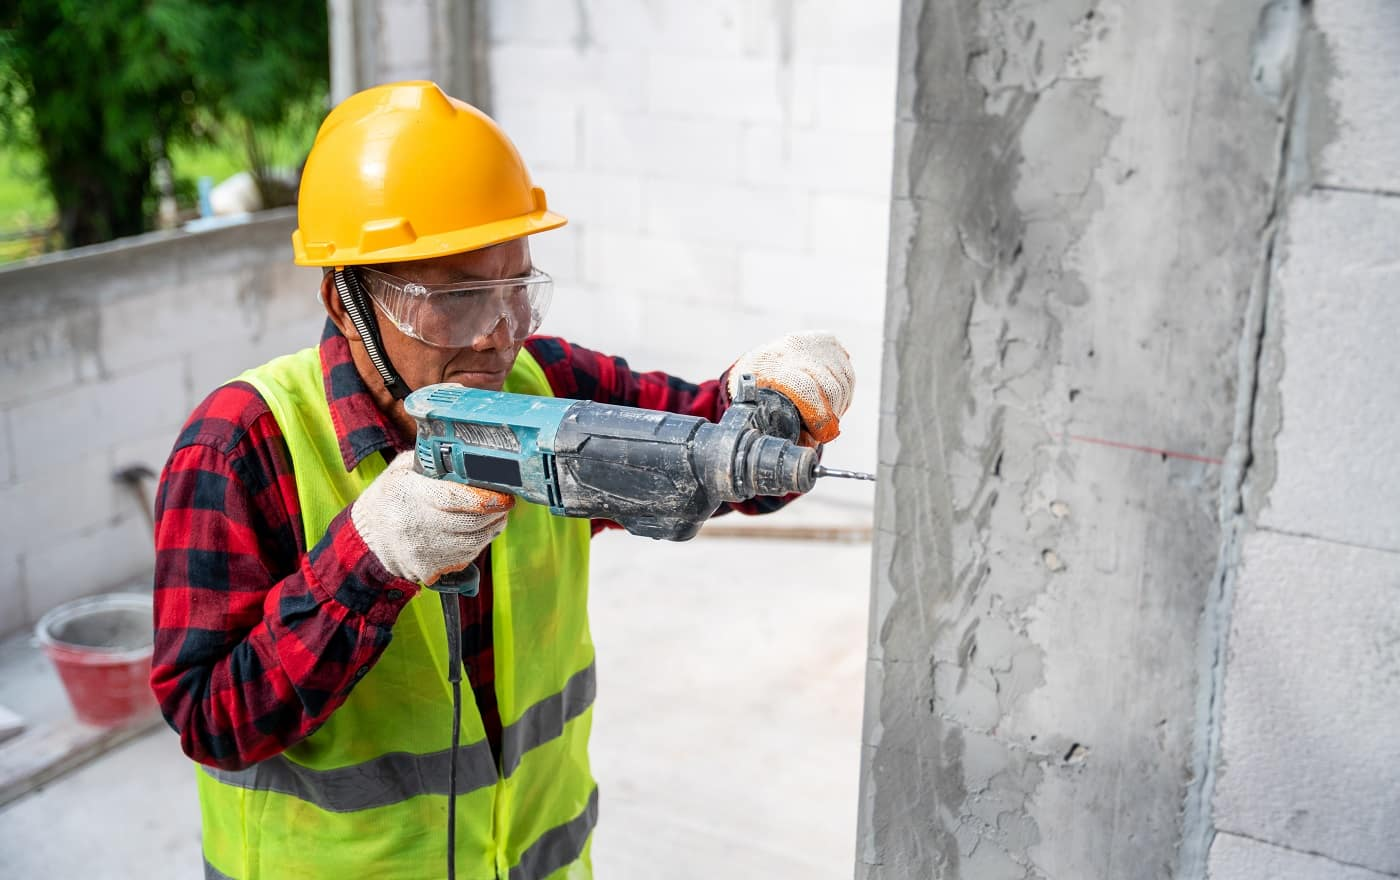 tiler using electric impact drill to drilling cement wall at unfinished house construction